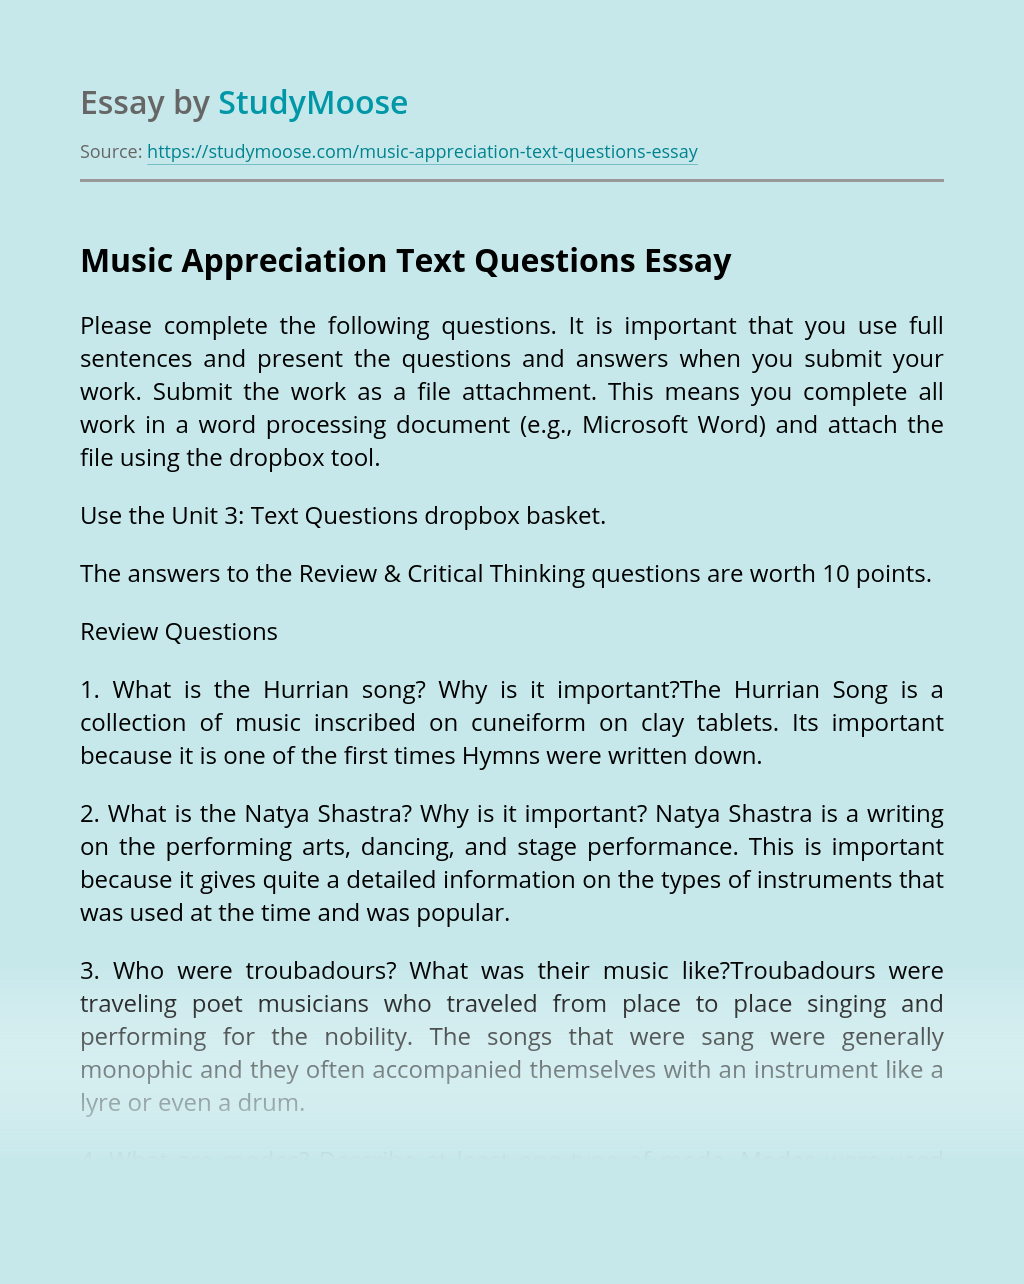 Music Appreciation Text Questions